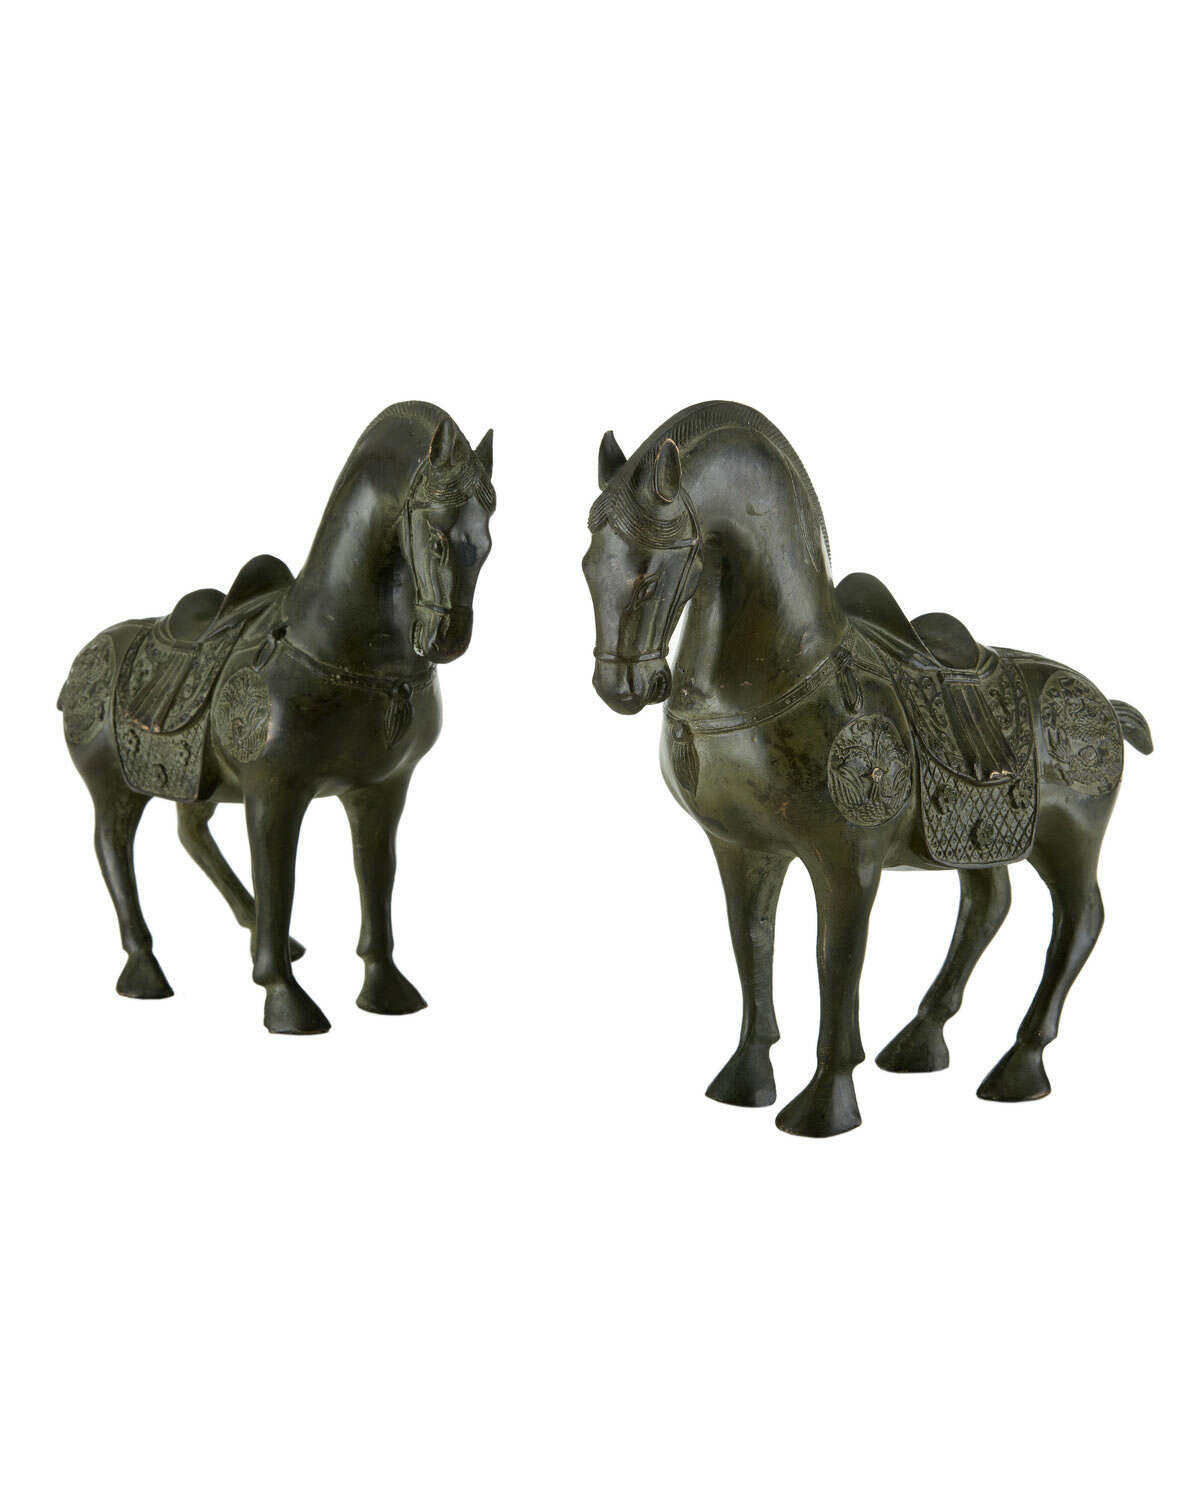 Pair of antique Han-style brass horse statues, $495 at Neiman Marcus.